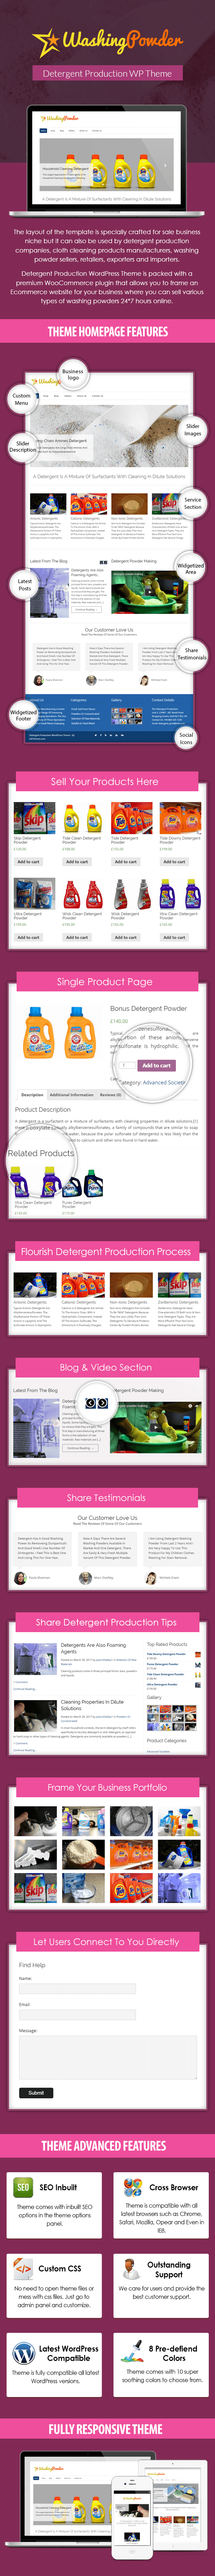 Detergent Production WP Theme